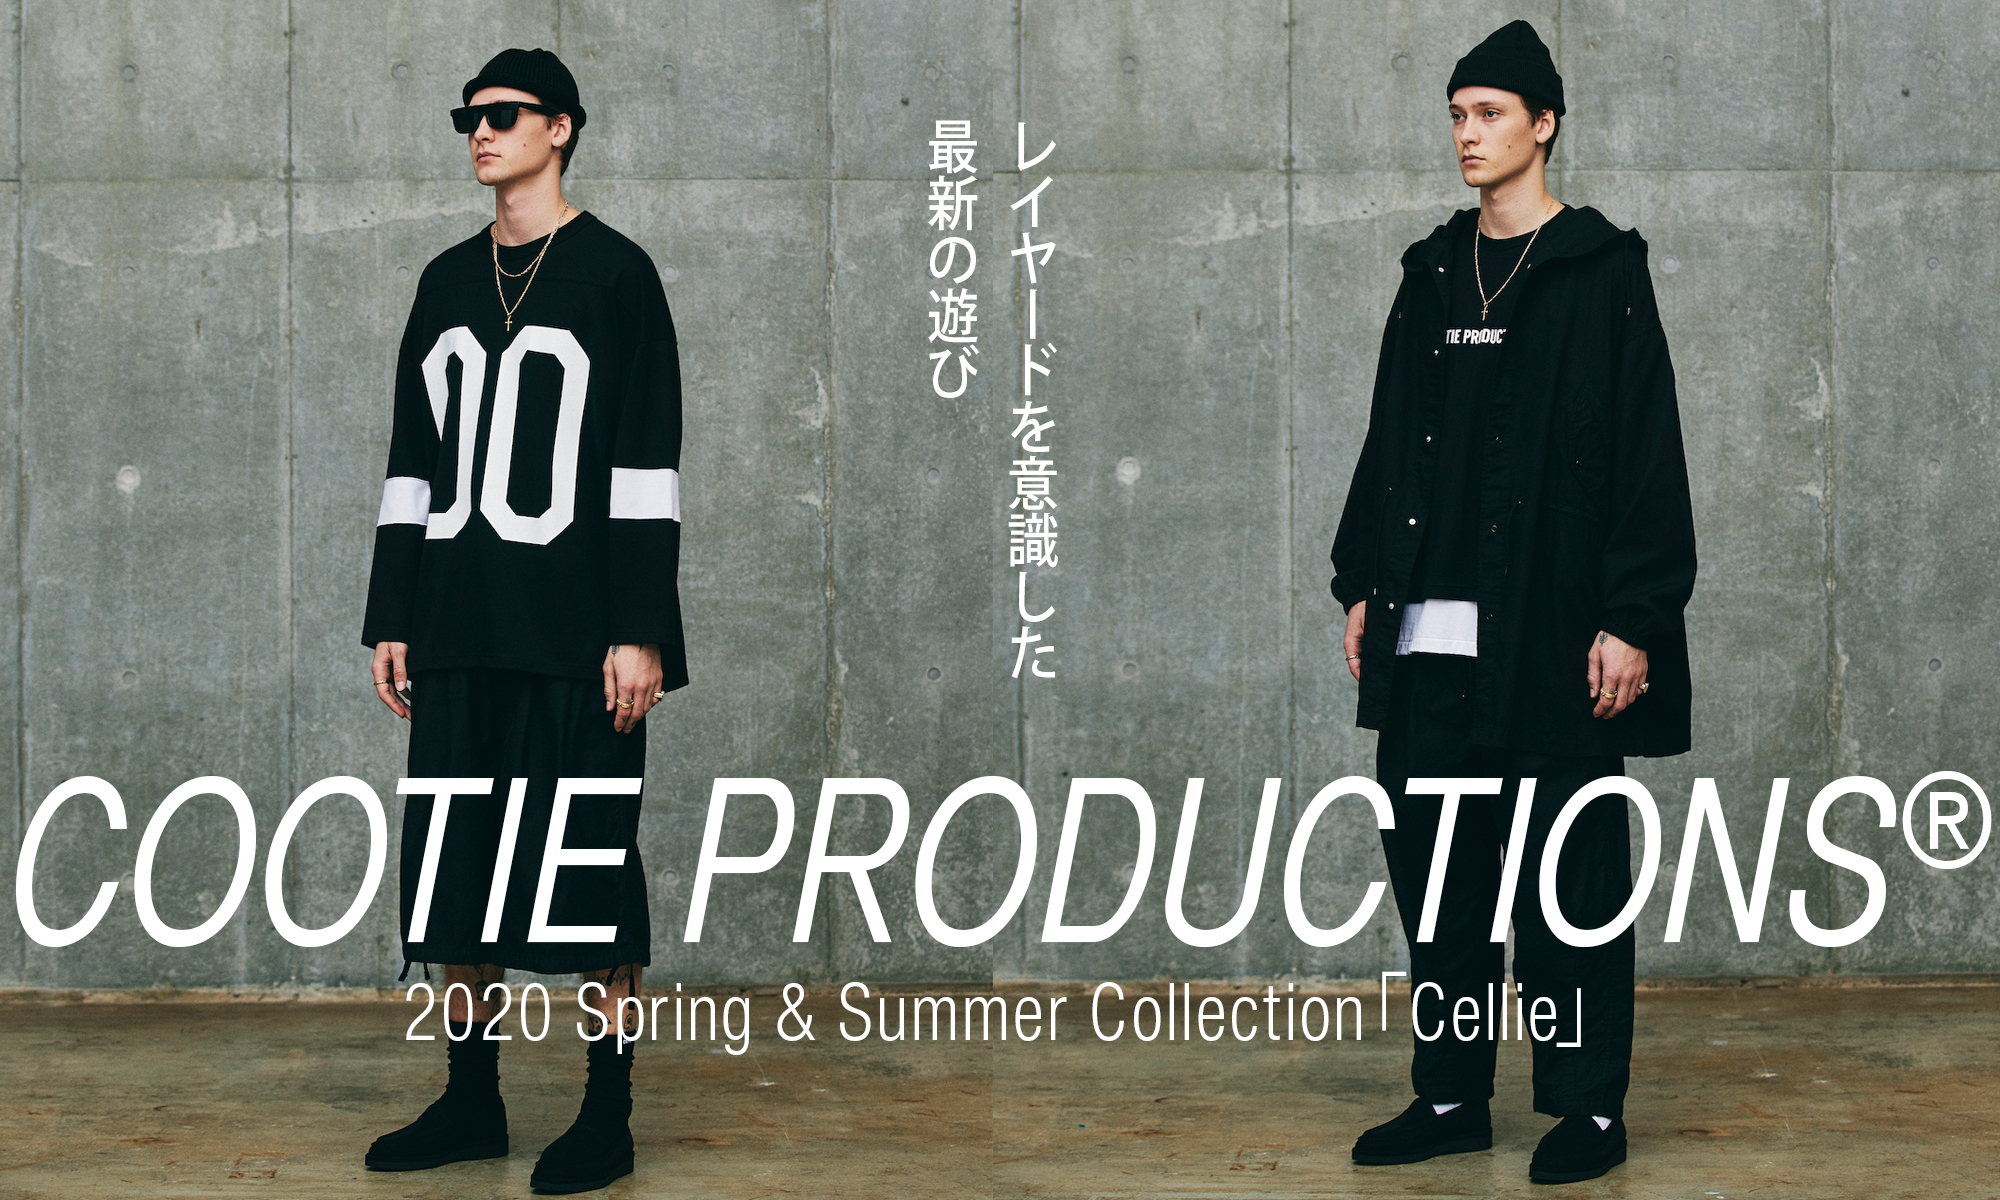 レイヤードを意識した最新の遊び COOTIE PRODUCTIONS® - 2020 Spring & Summer Collection「Cellie」-